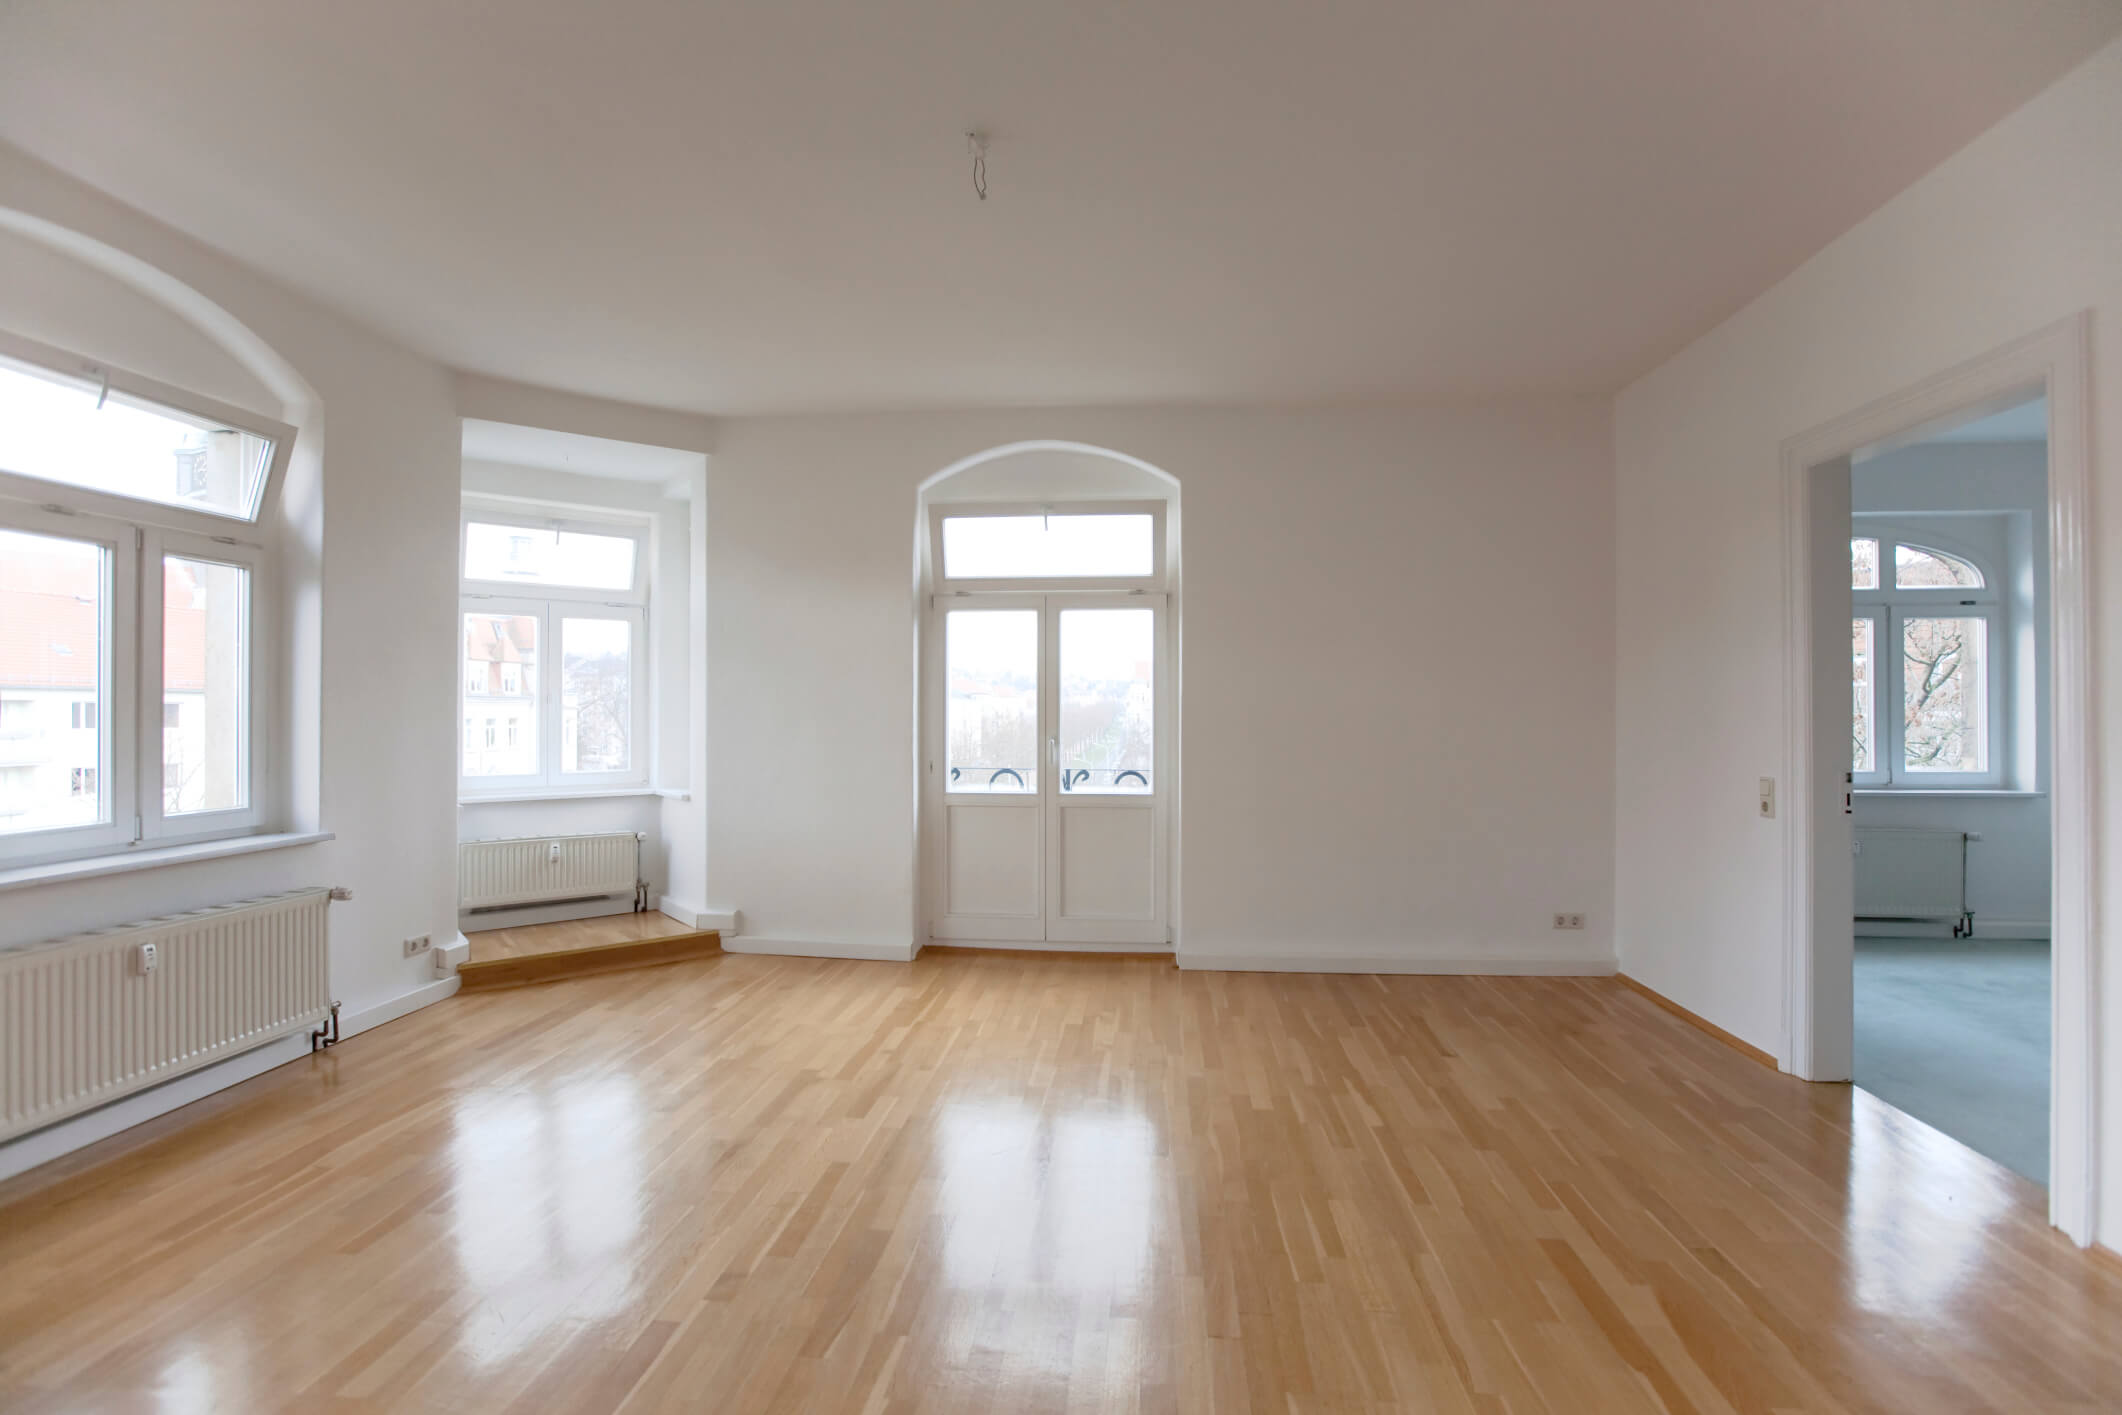 selling empty home